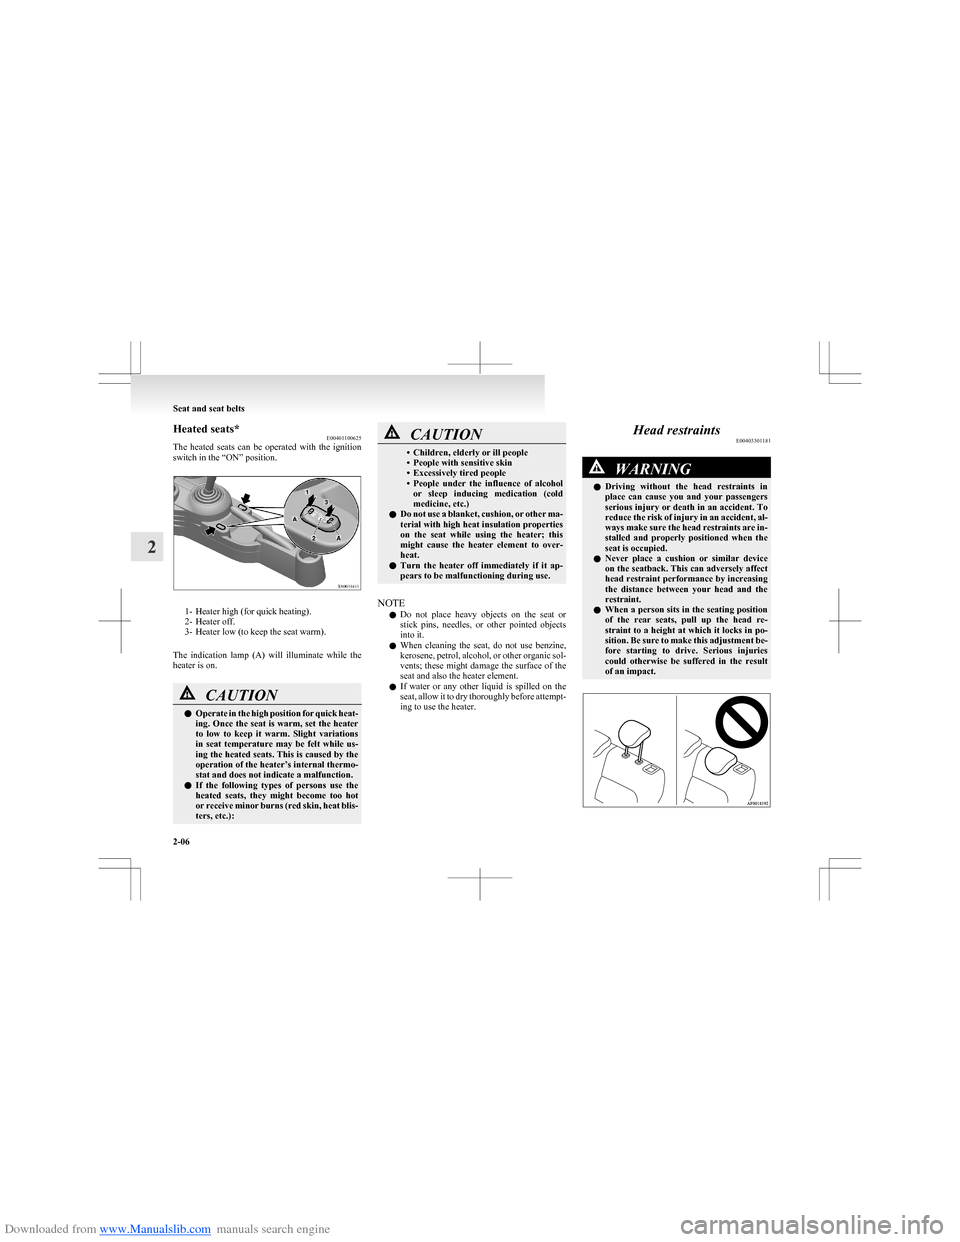 MITSUBISHI COLT 2009 10.G Service Manual (273 Pages)